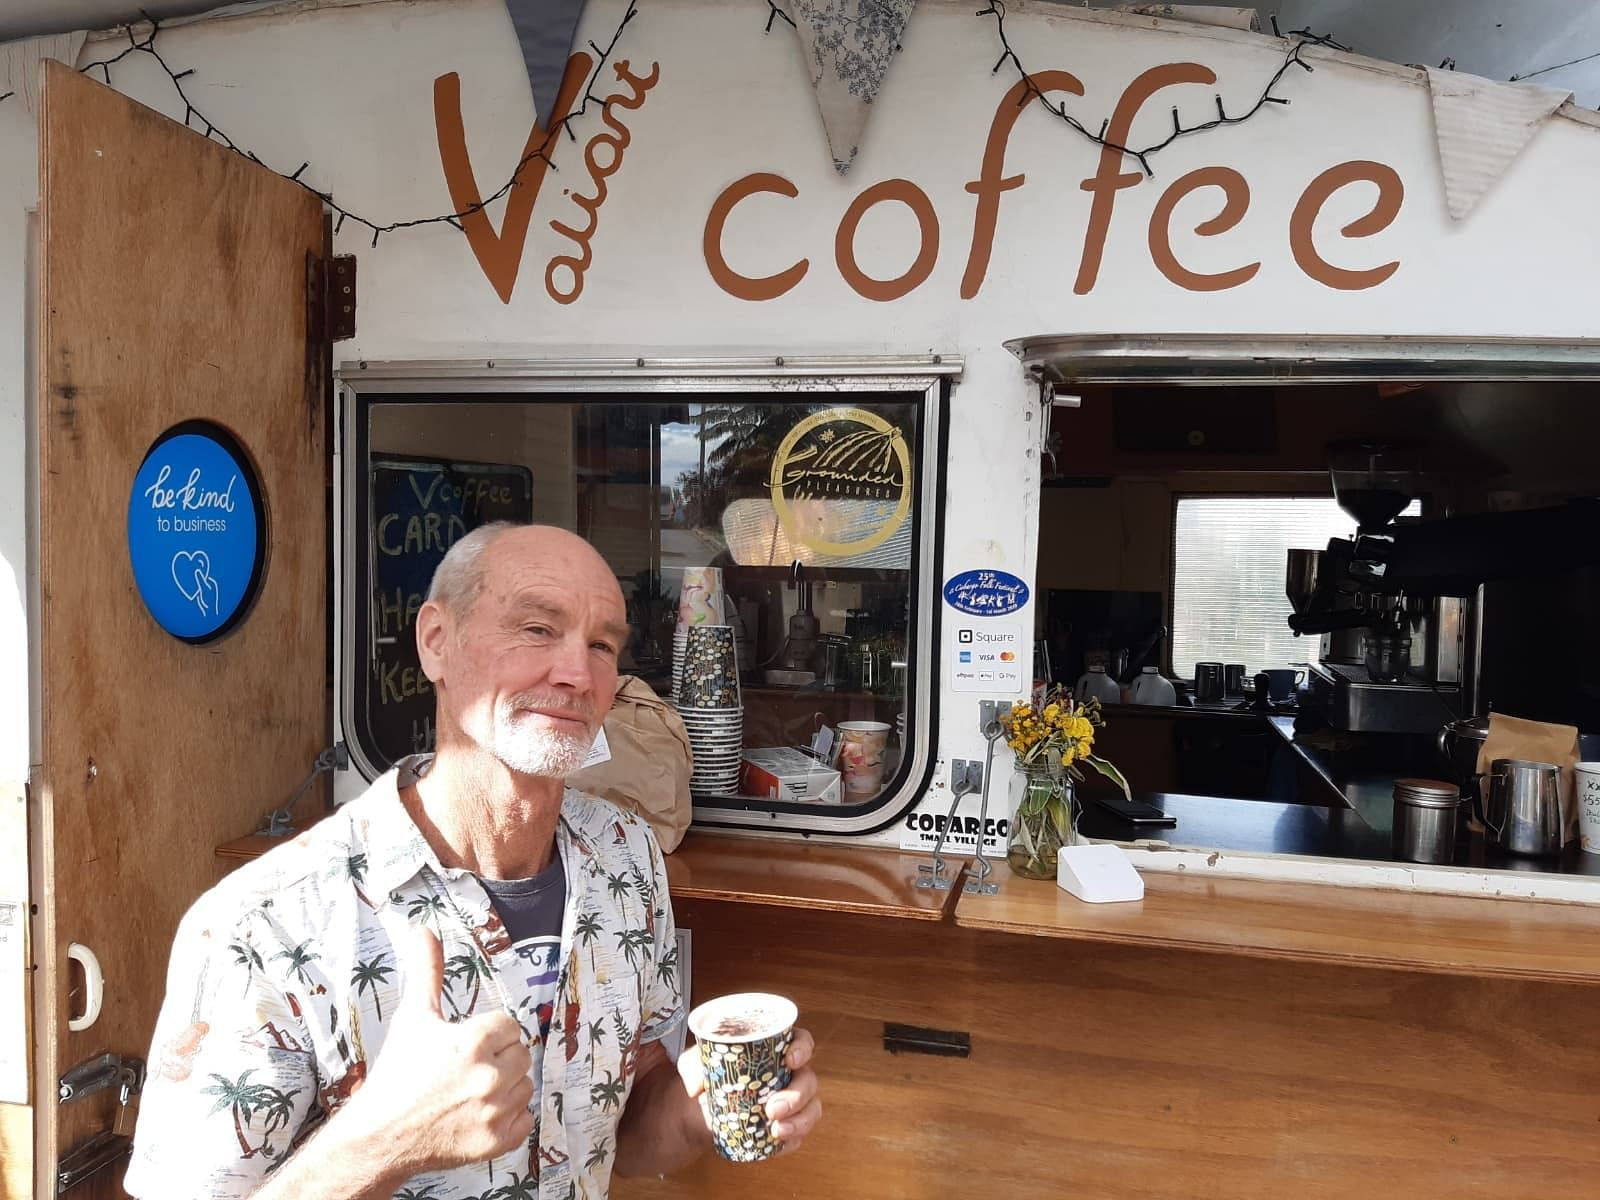 James Bristow in front of his Valiant Coffee caravan in Cobargo.